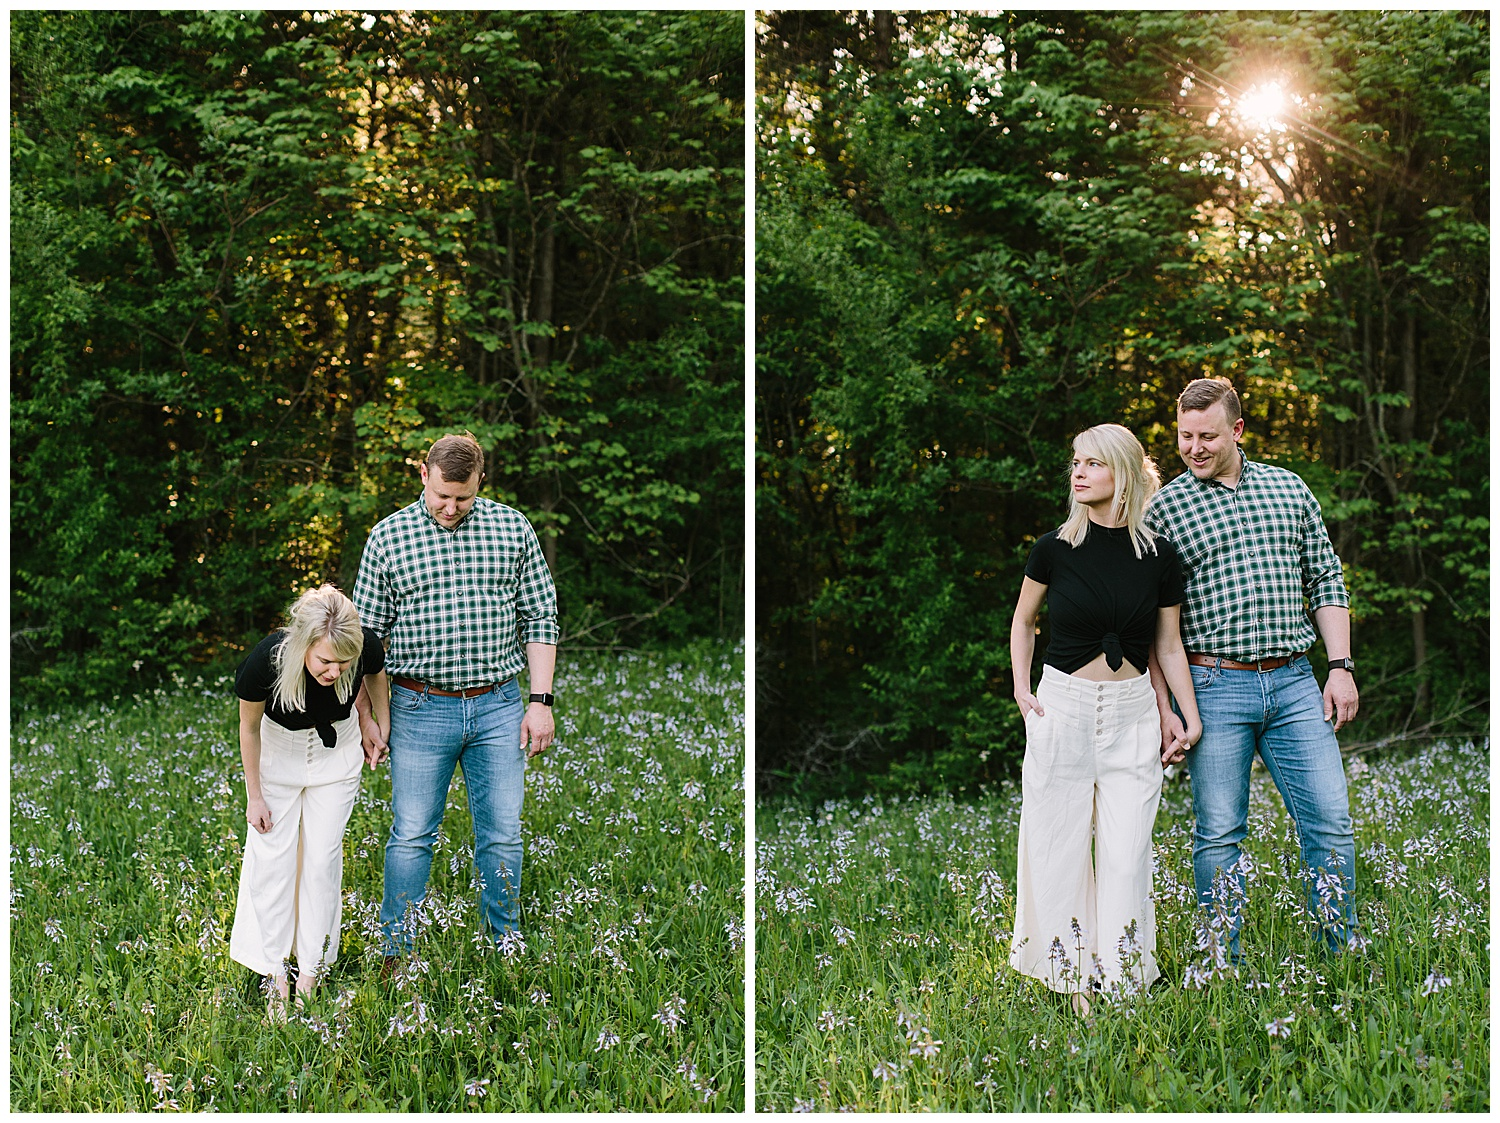 trent.and.kendra.photography.bernheim.forest.photos-25.jpg